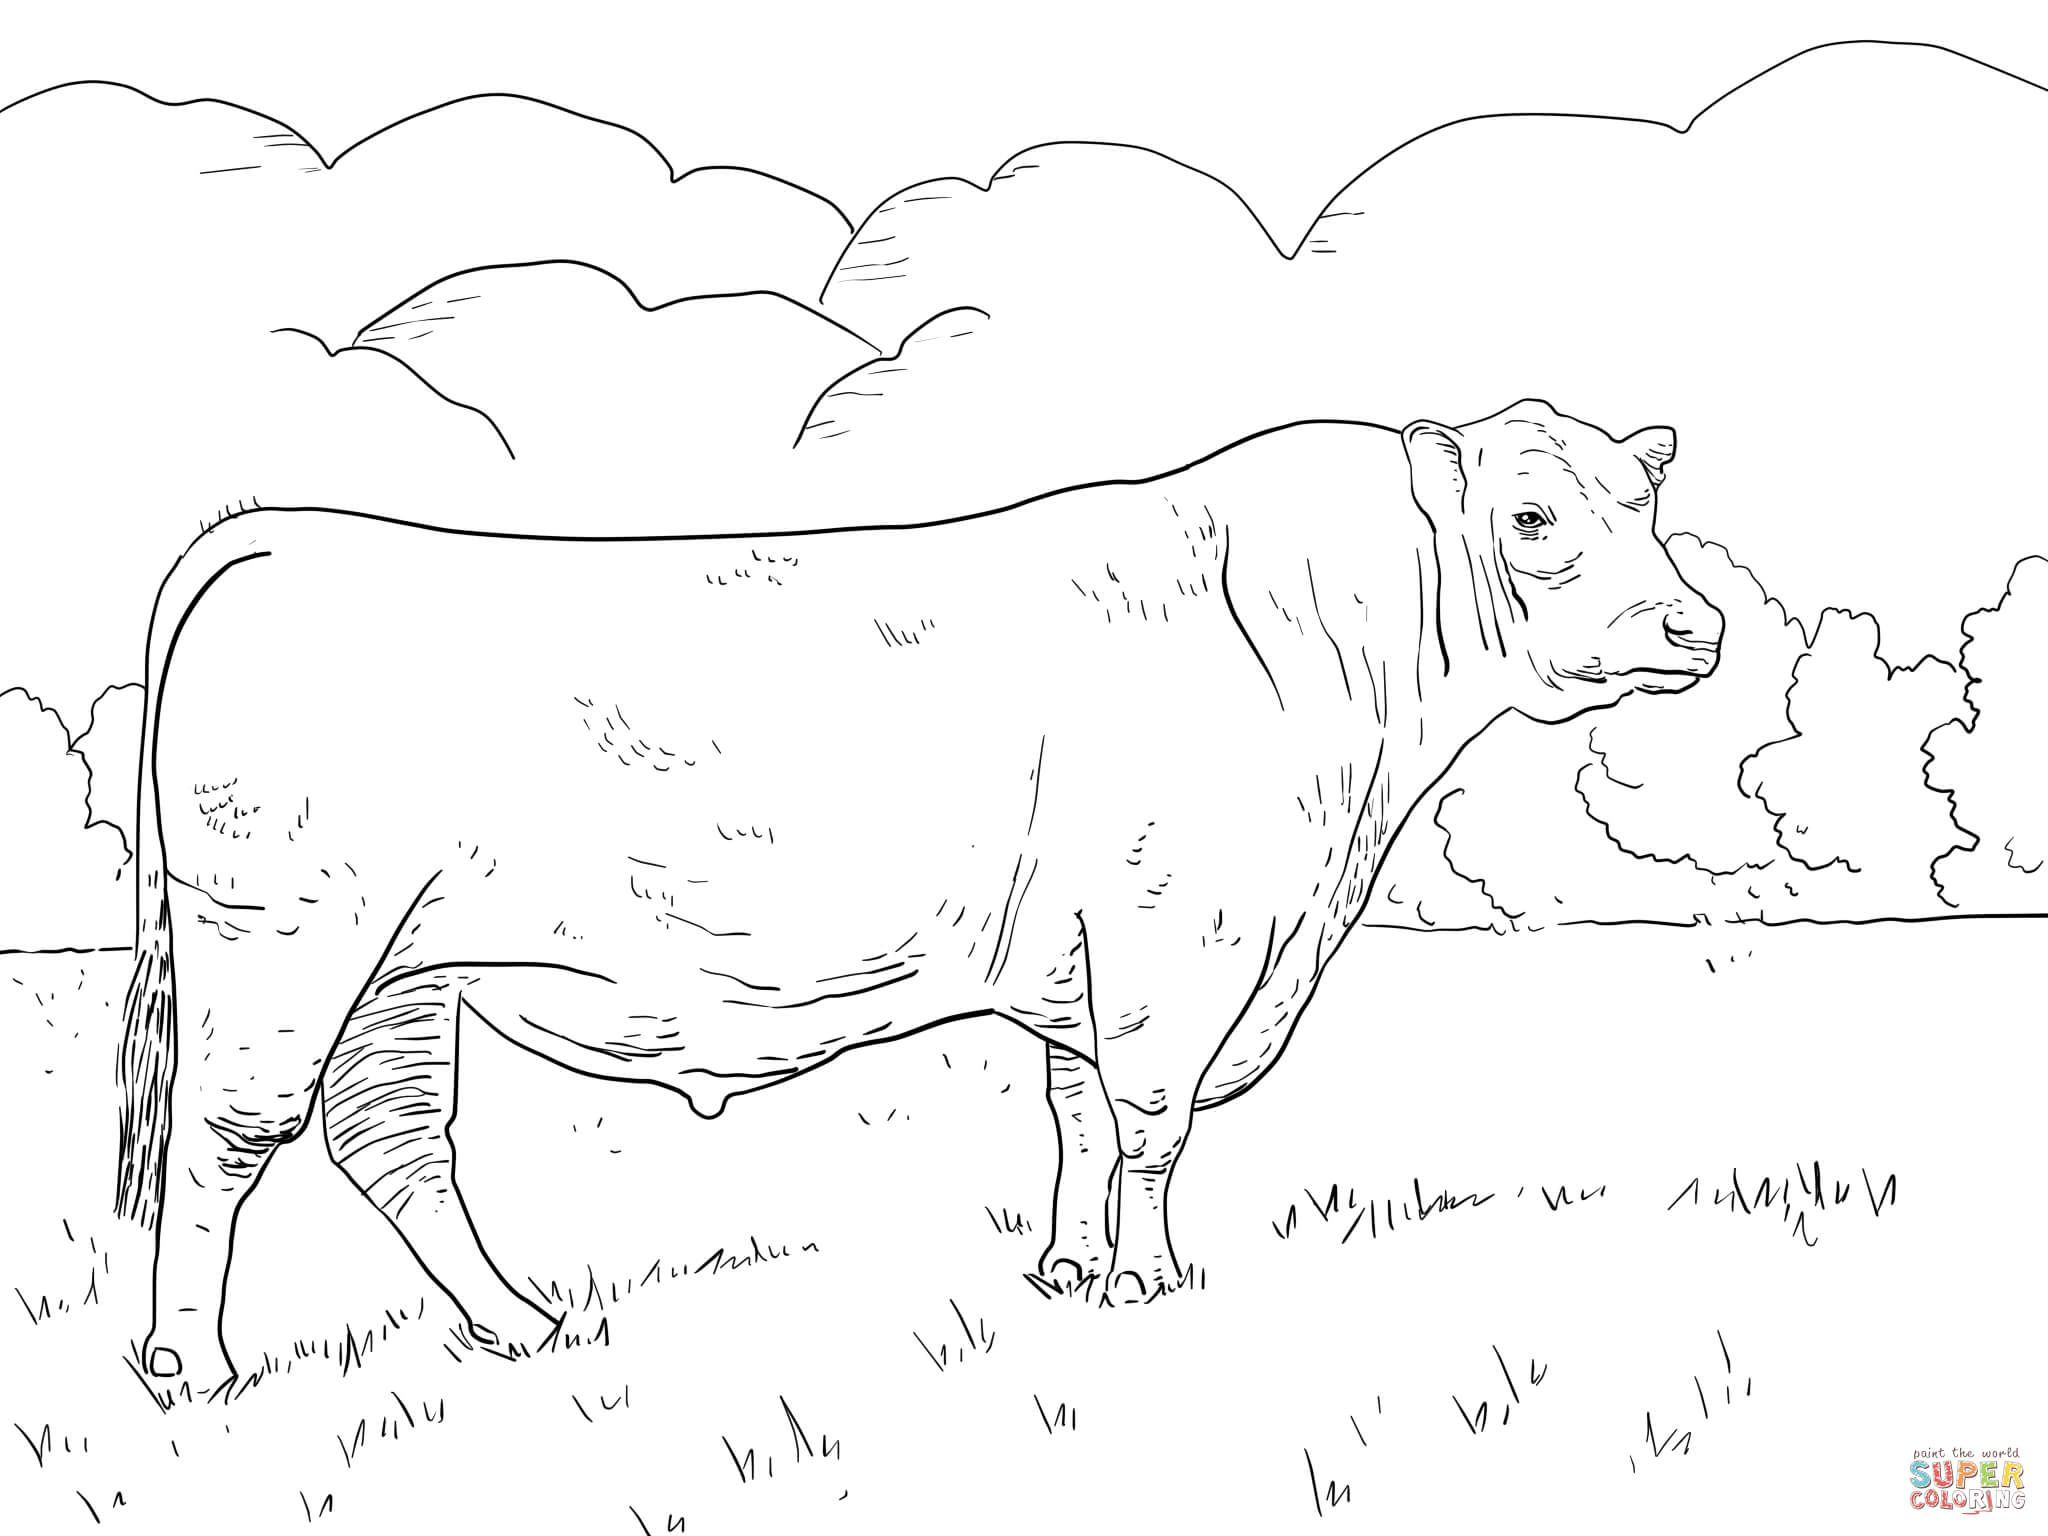 Angus Bull coloring page from Bulls category. Select from